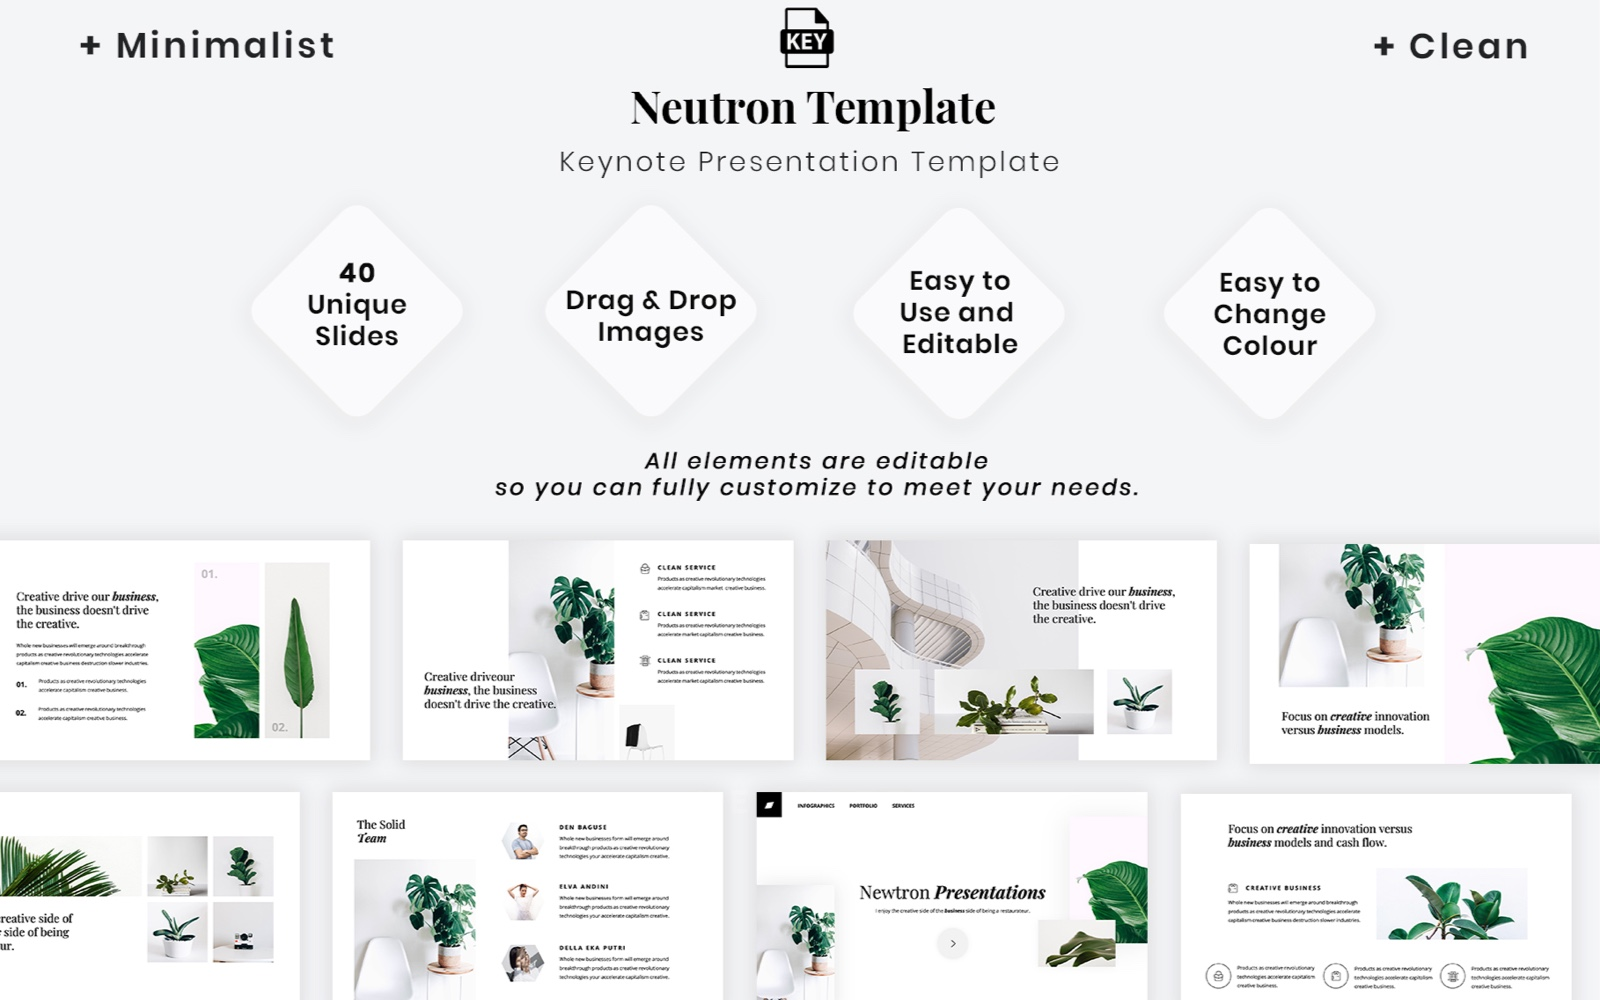 Minimalist - Clean Presentation Keynote Template #102294